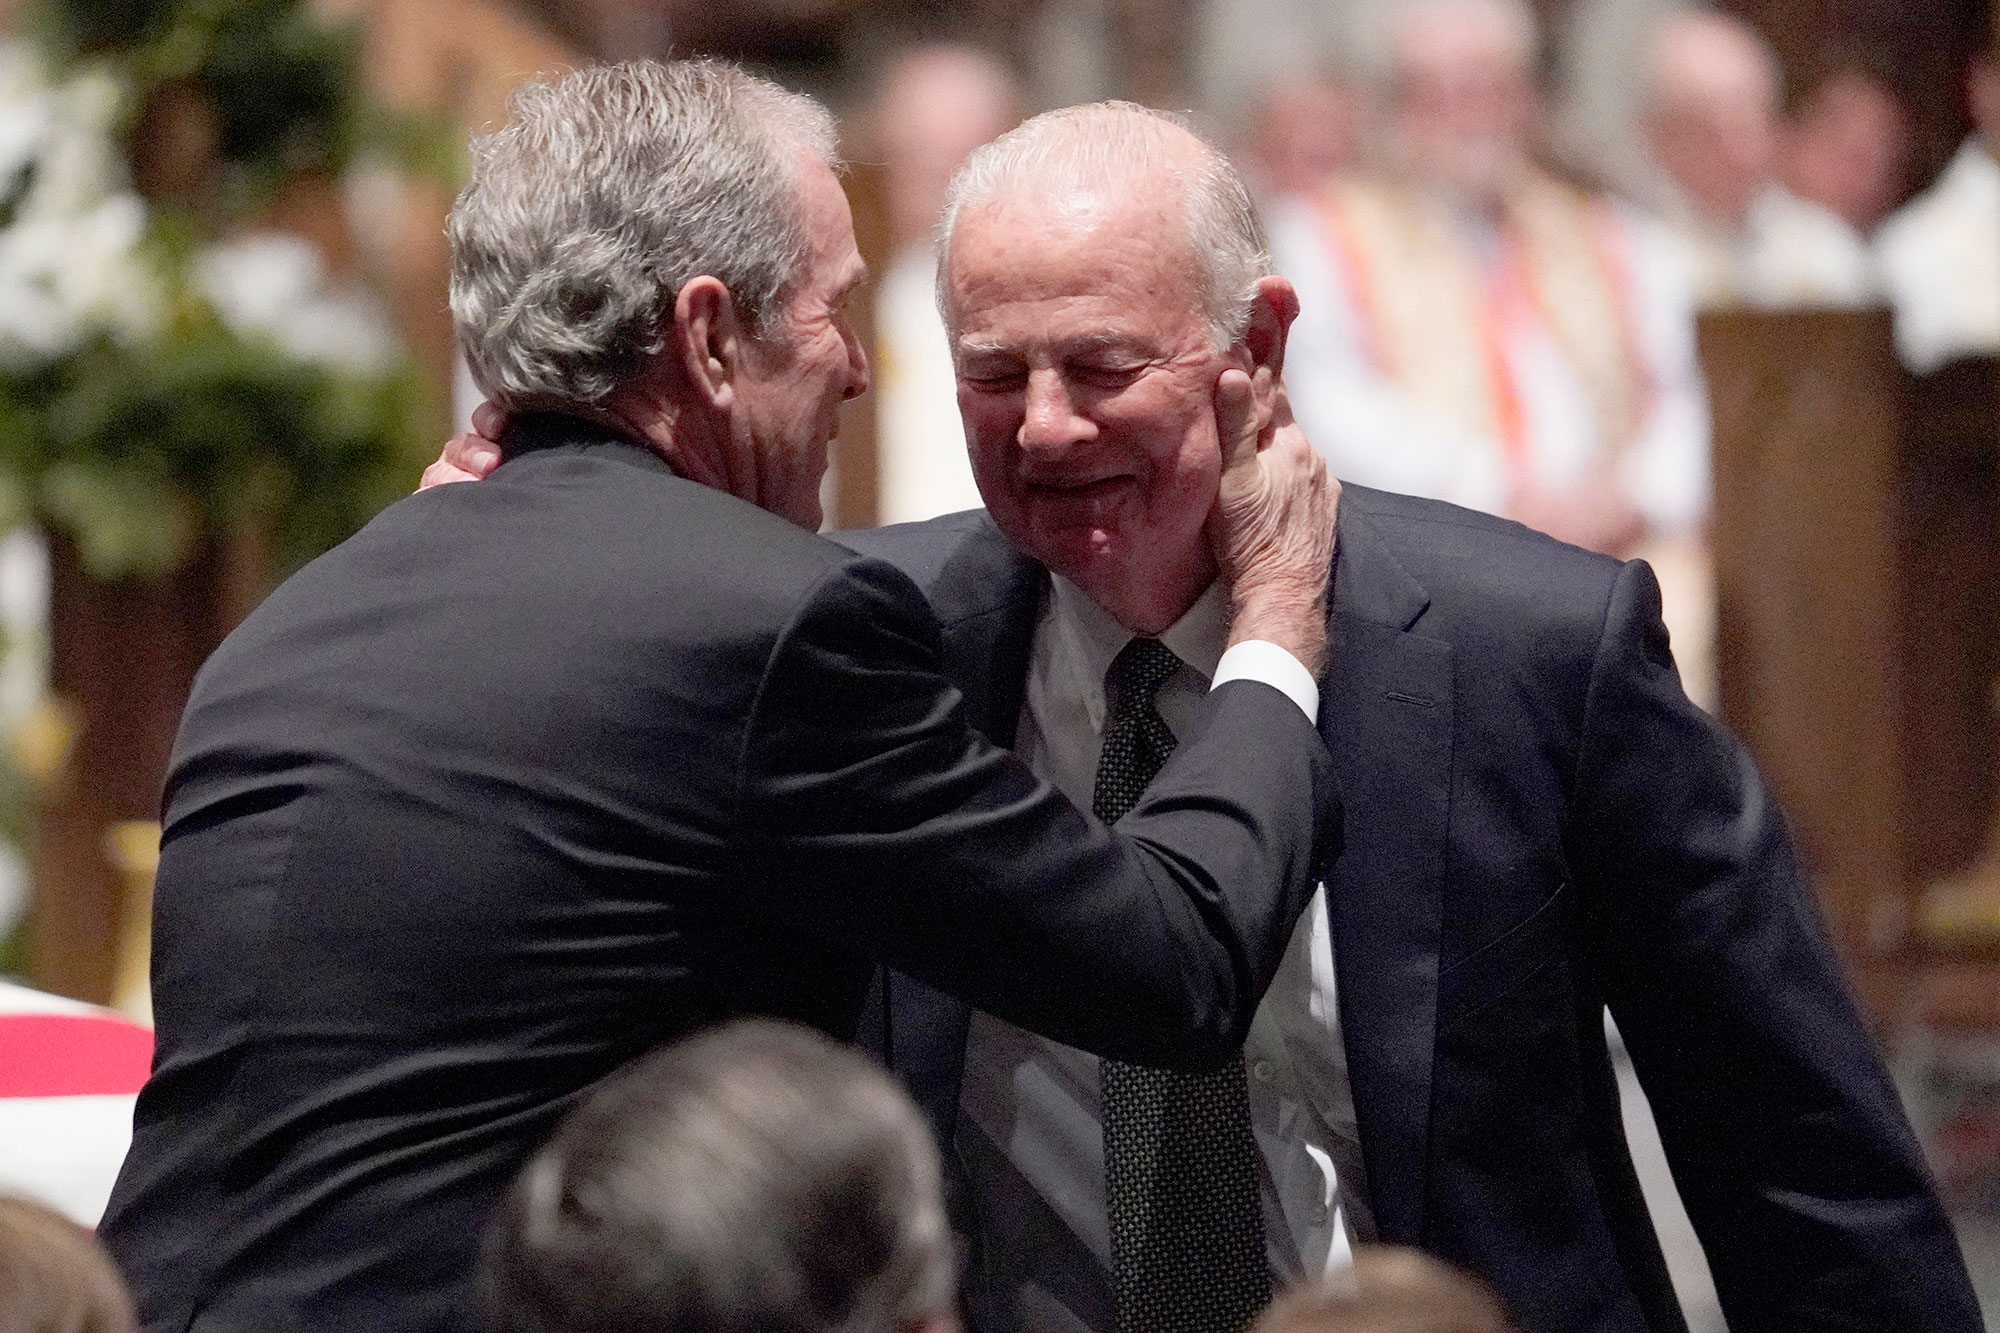 <div class='meta'><div class='origin-logo' data-origin='none'></div><span class='caption-text' data-credit='David J. Phillip-Pool/Getty Images'>Former President George W. Bush embraces former Secretary of State James Baker, right, after he gave a eulogy during the funeral for former President George H.W. Bush.</span></div>